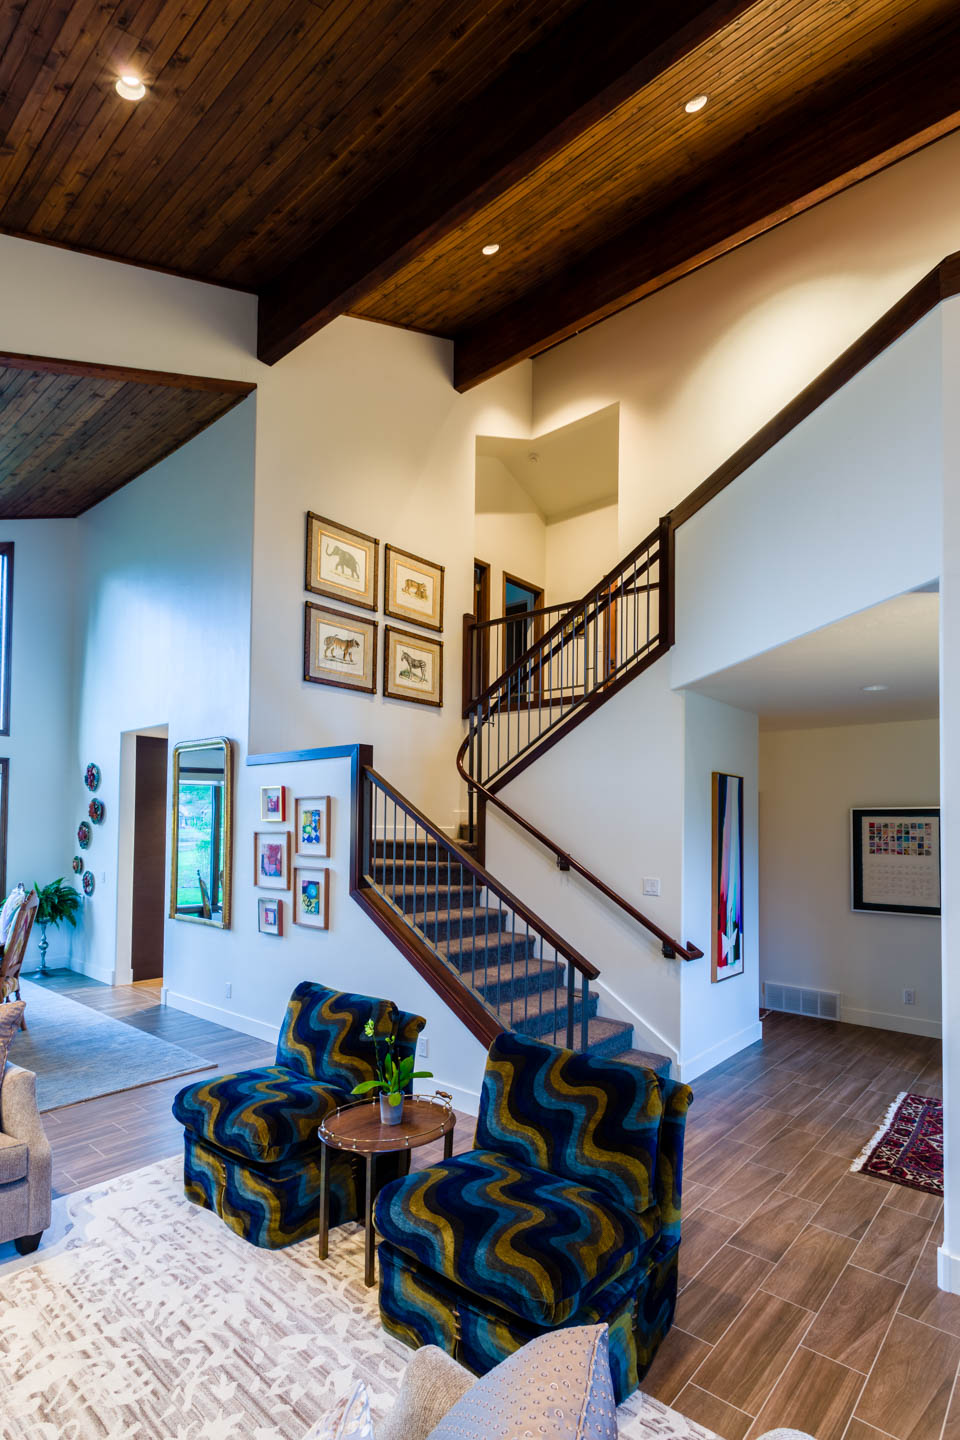 Interior Design   Architectural Photography in Park City   dav d     Main room and staircase